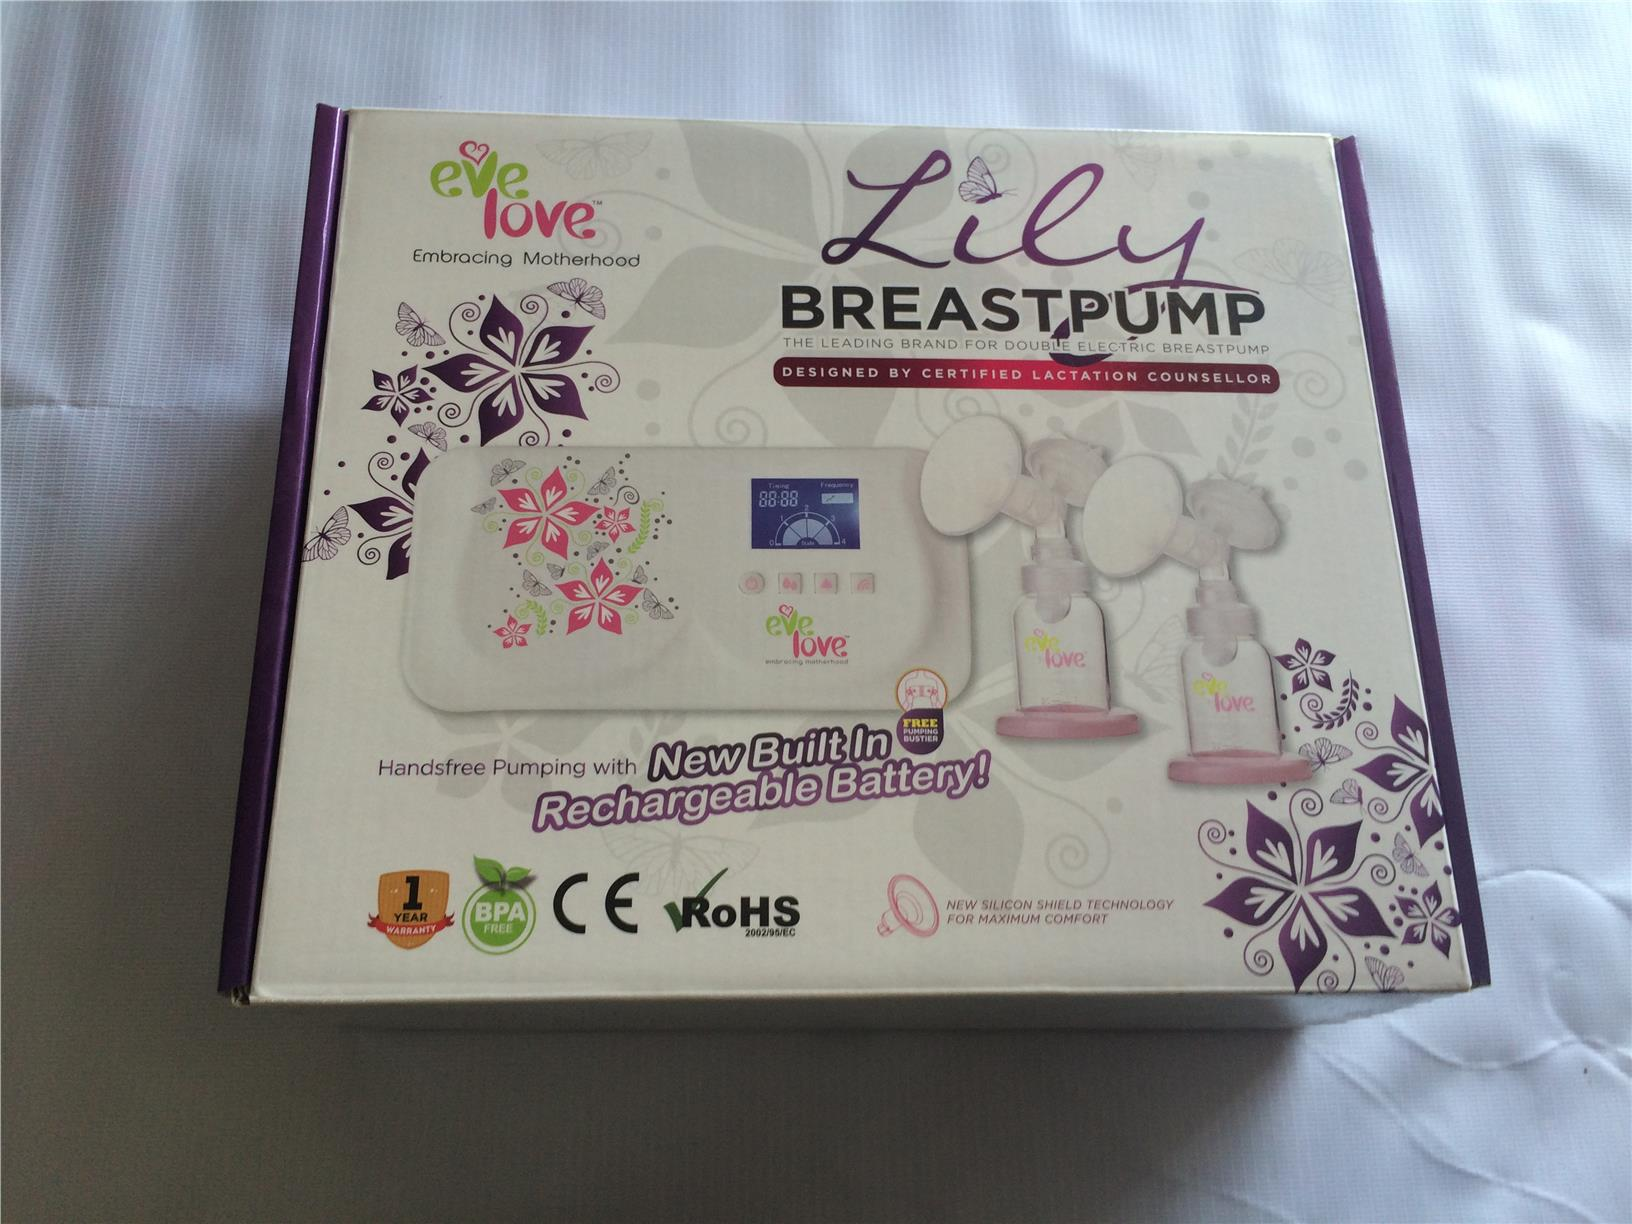 Lily Breastpump (eve love)